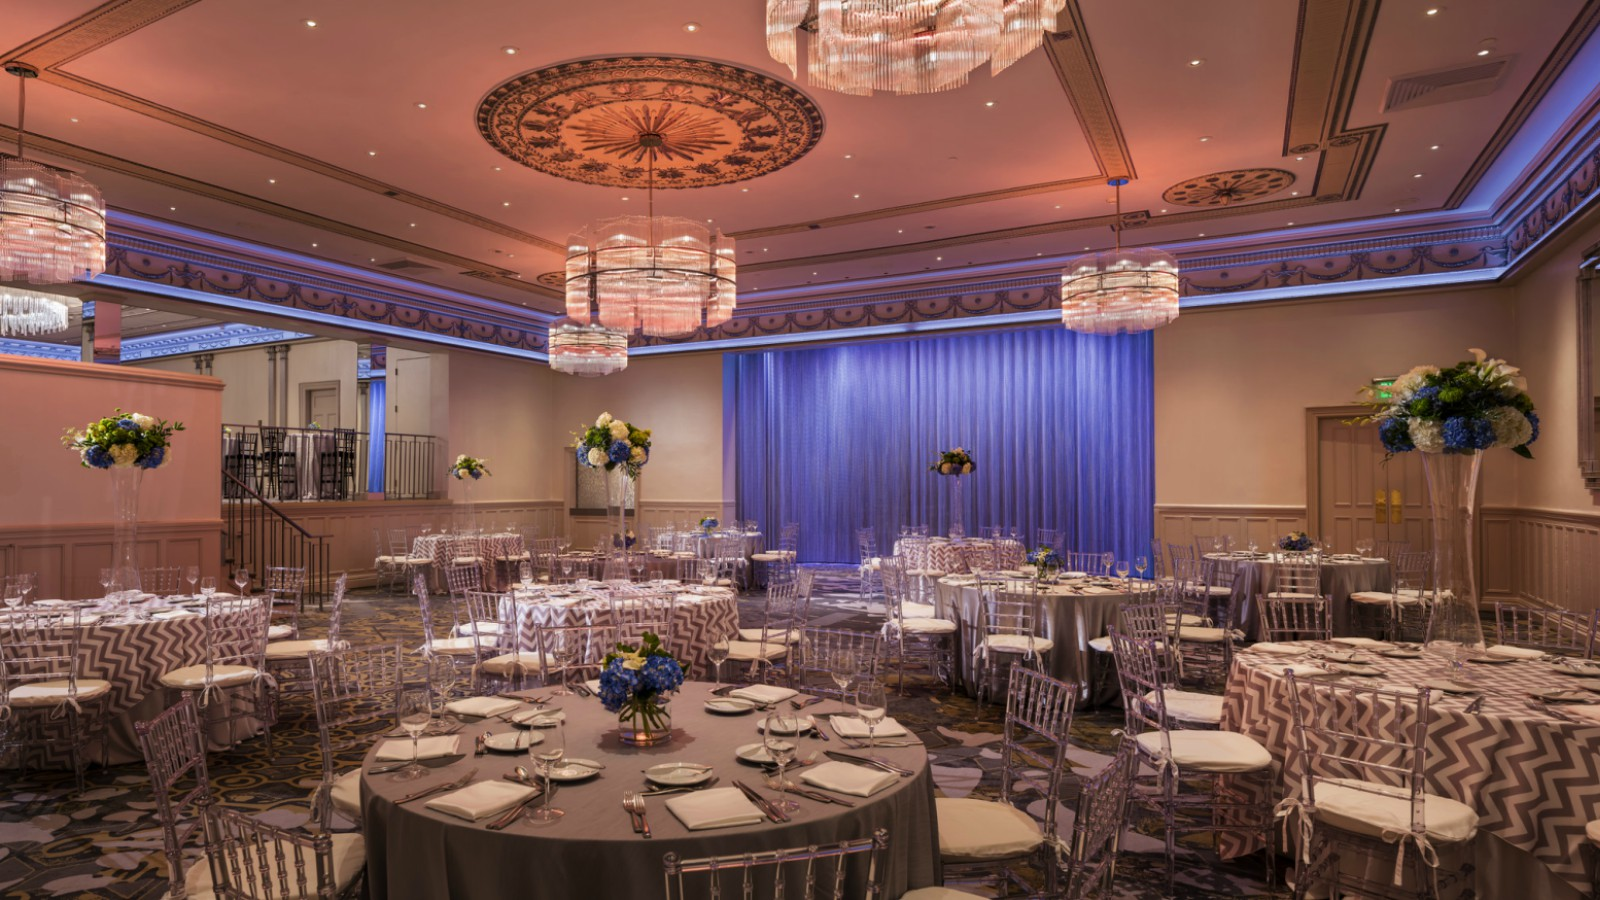 Meeting Rooms in Cambridge - George Washington Ballroom